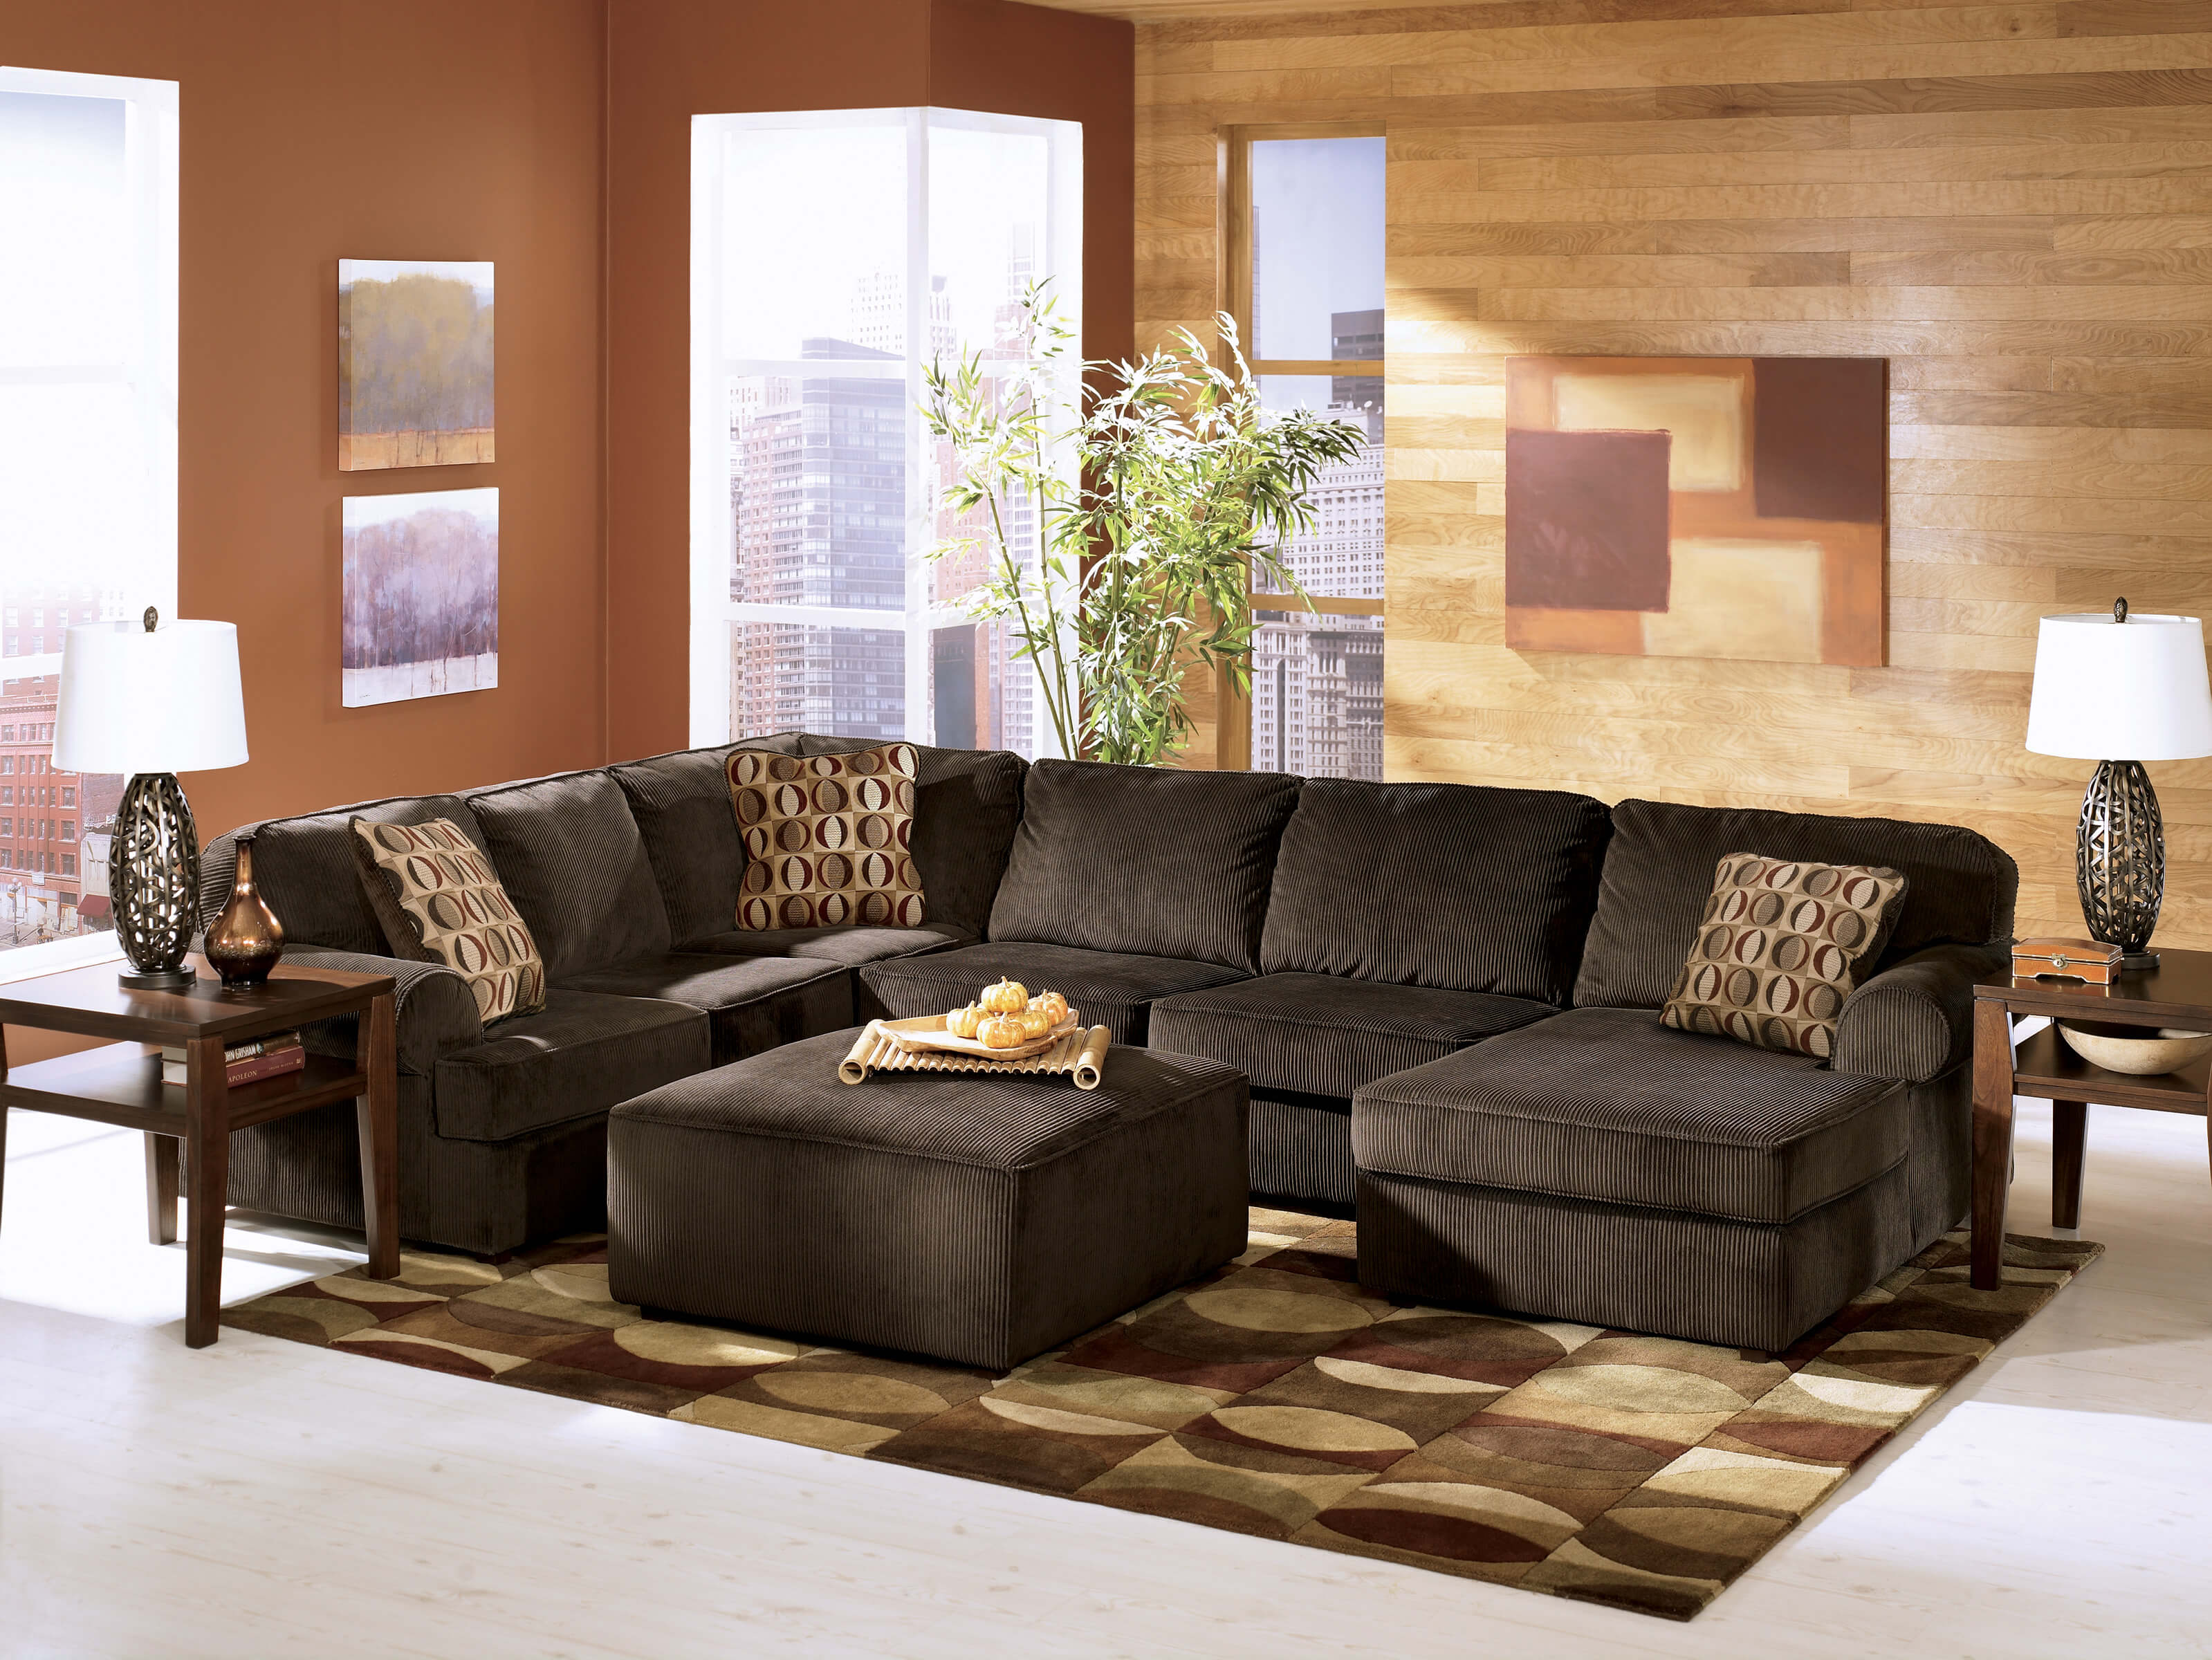 Astounding 68404 Vista Chocolate Ashley Sectional Discontinued Andrewgaddart Wooden Chair Designs For Living Room Andrewgaddartcom